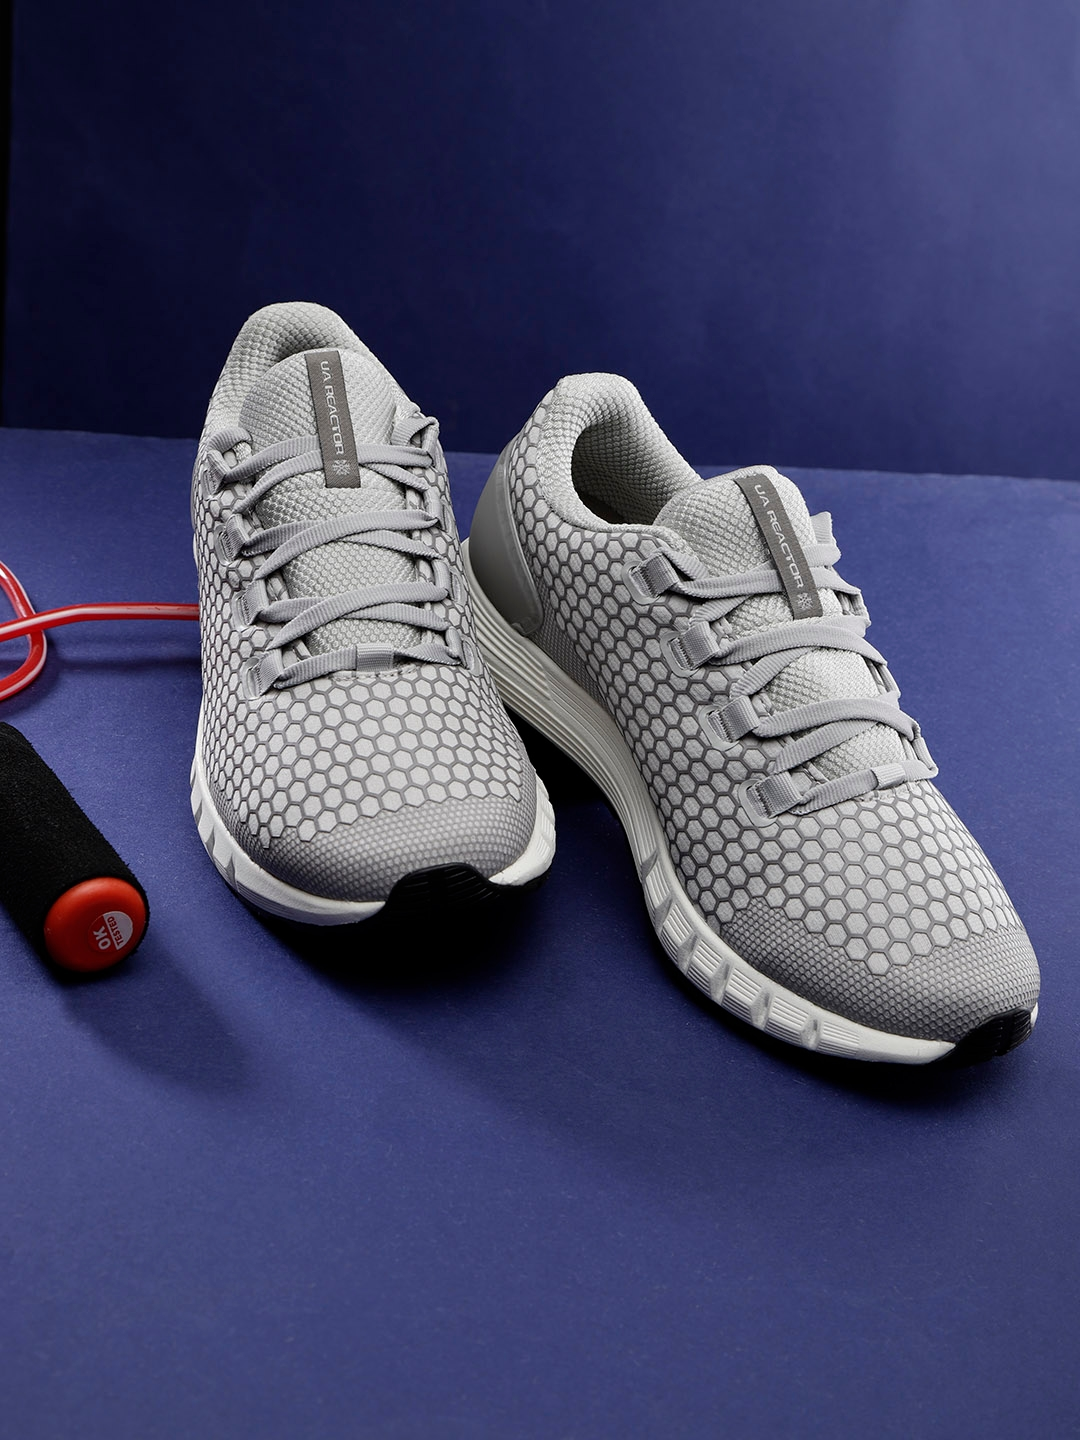 super popular be3b6 5231d UNDER ARMOUR Women Grey & Off-White UA HOVR CG Reactor NC Running Shoes